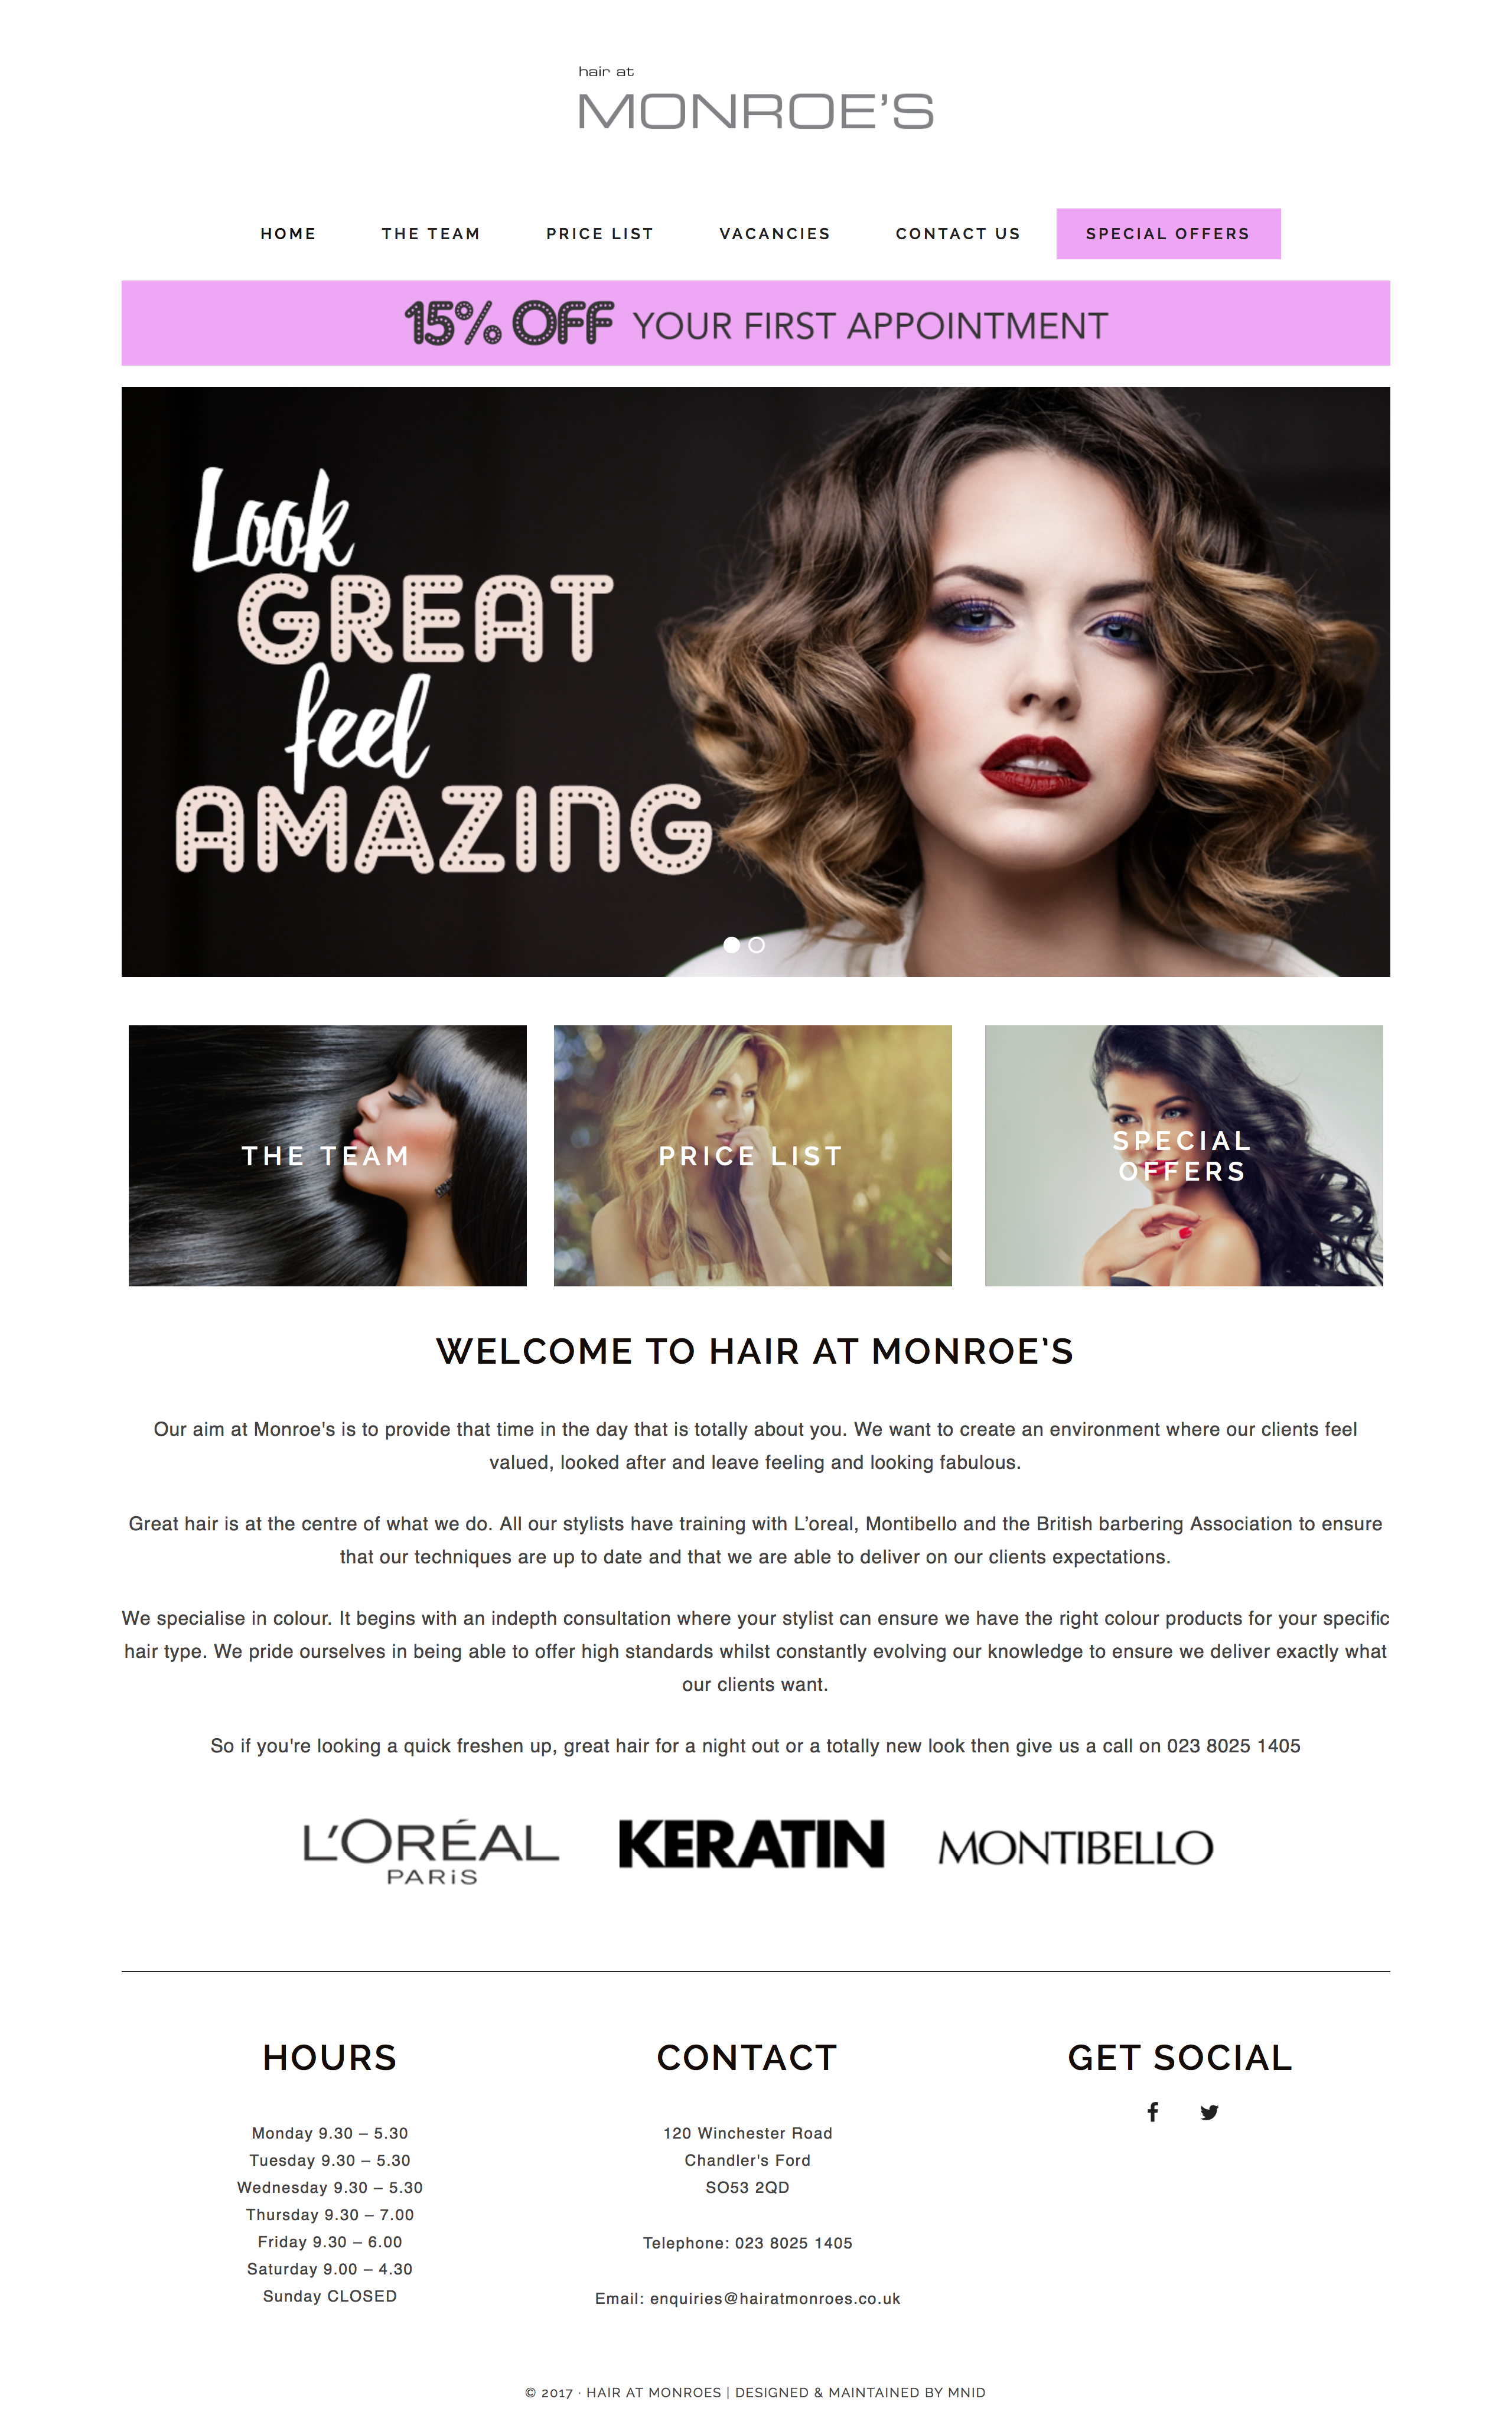 Hair at Monroe's full website homepage design